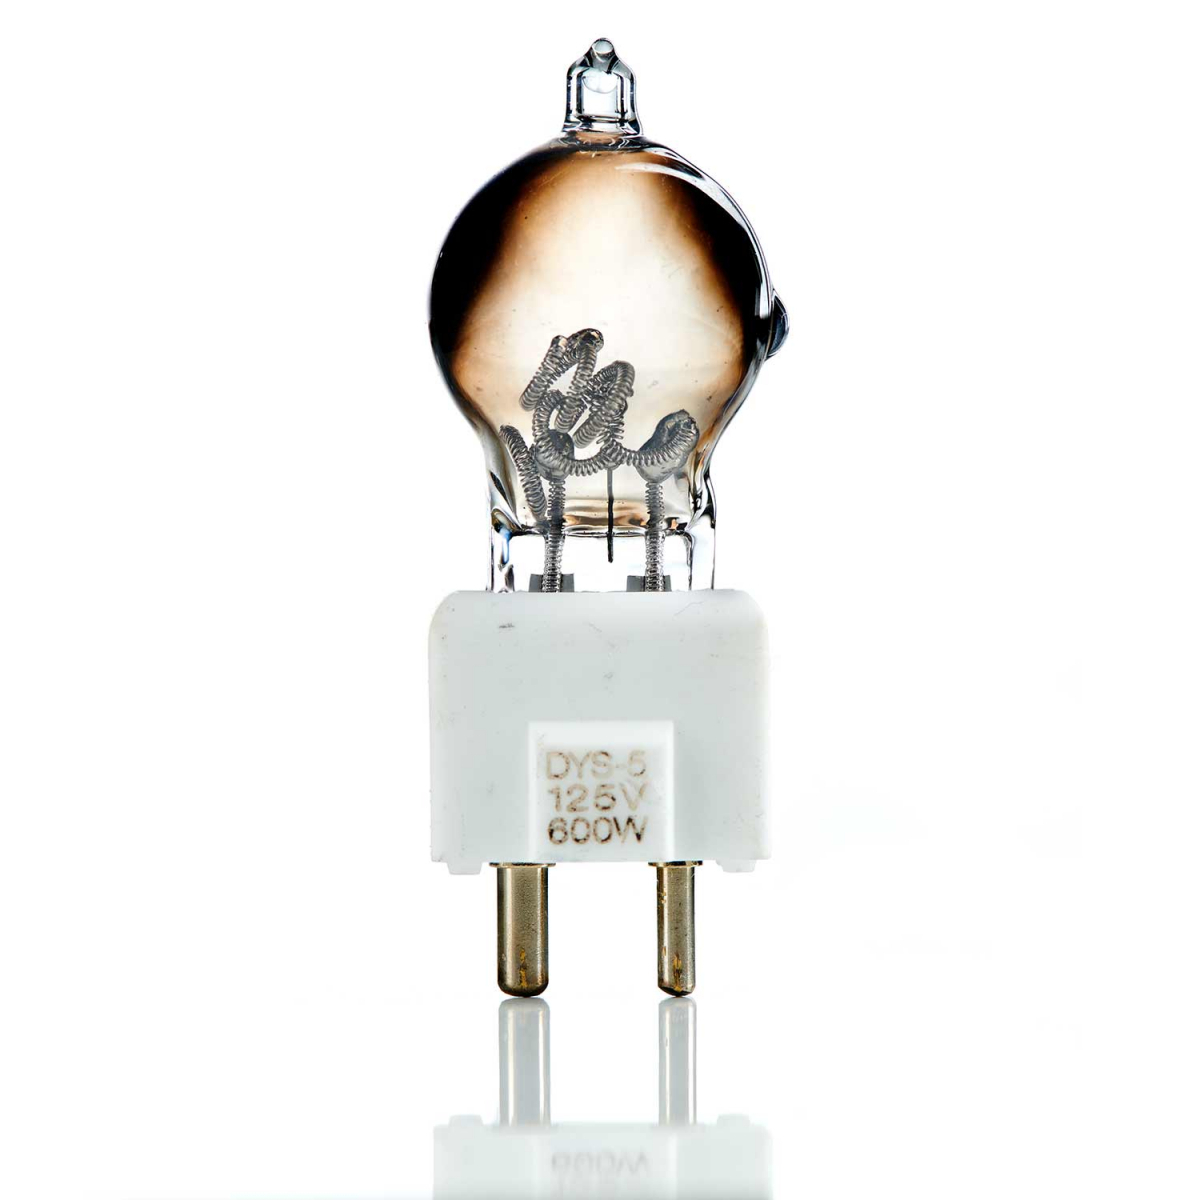 Burnt Bulb on White